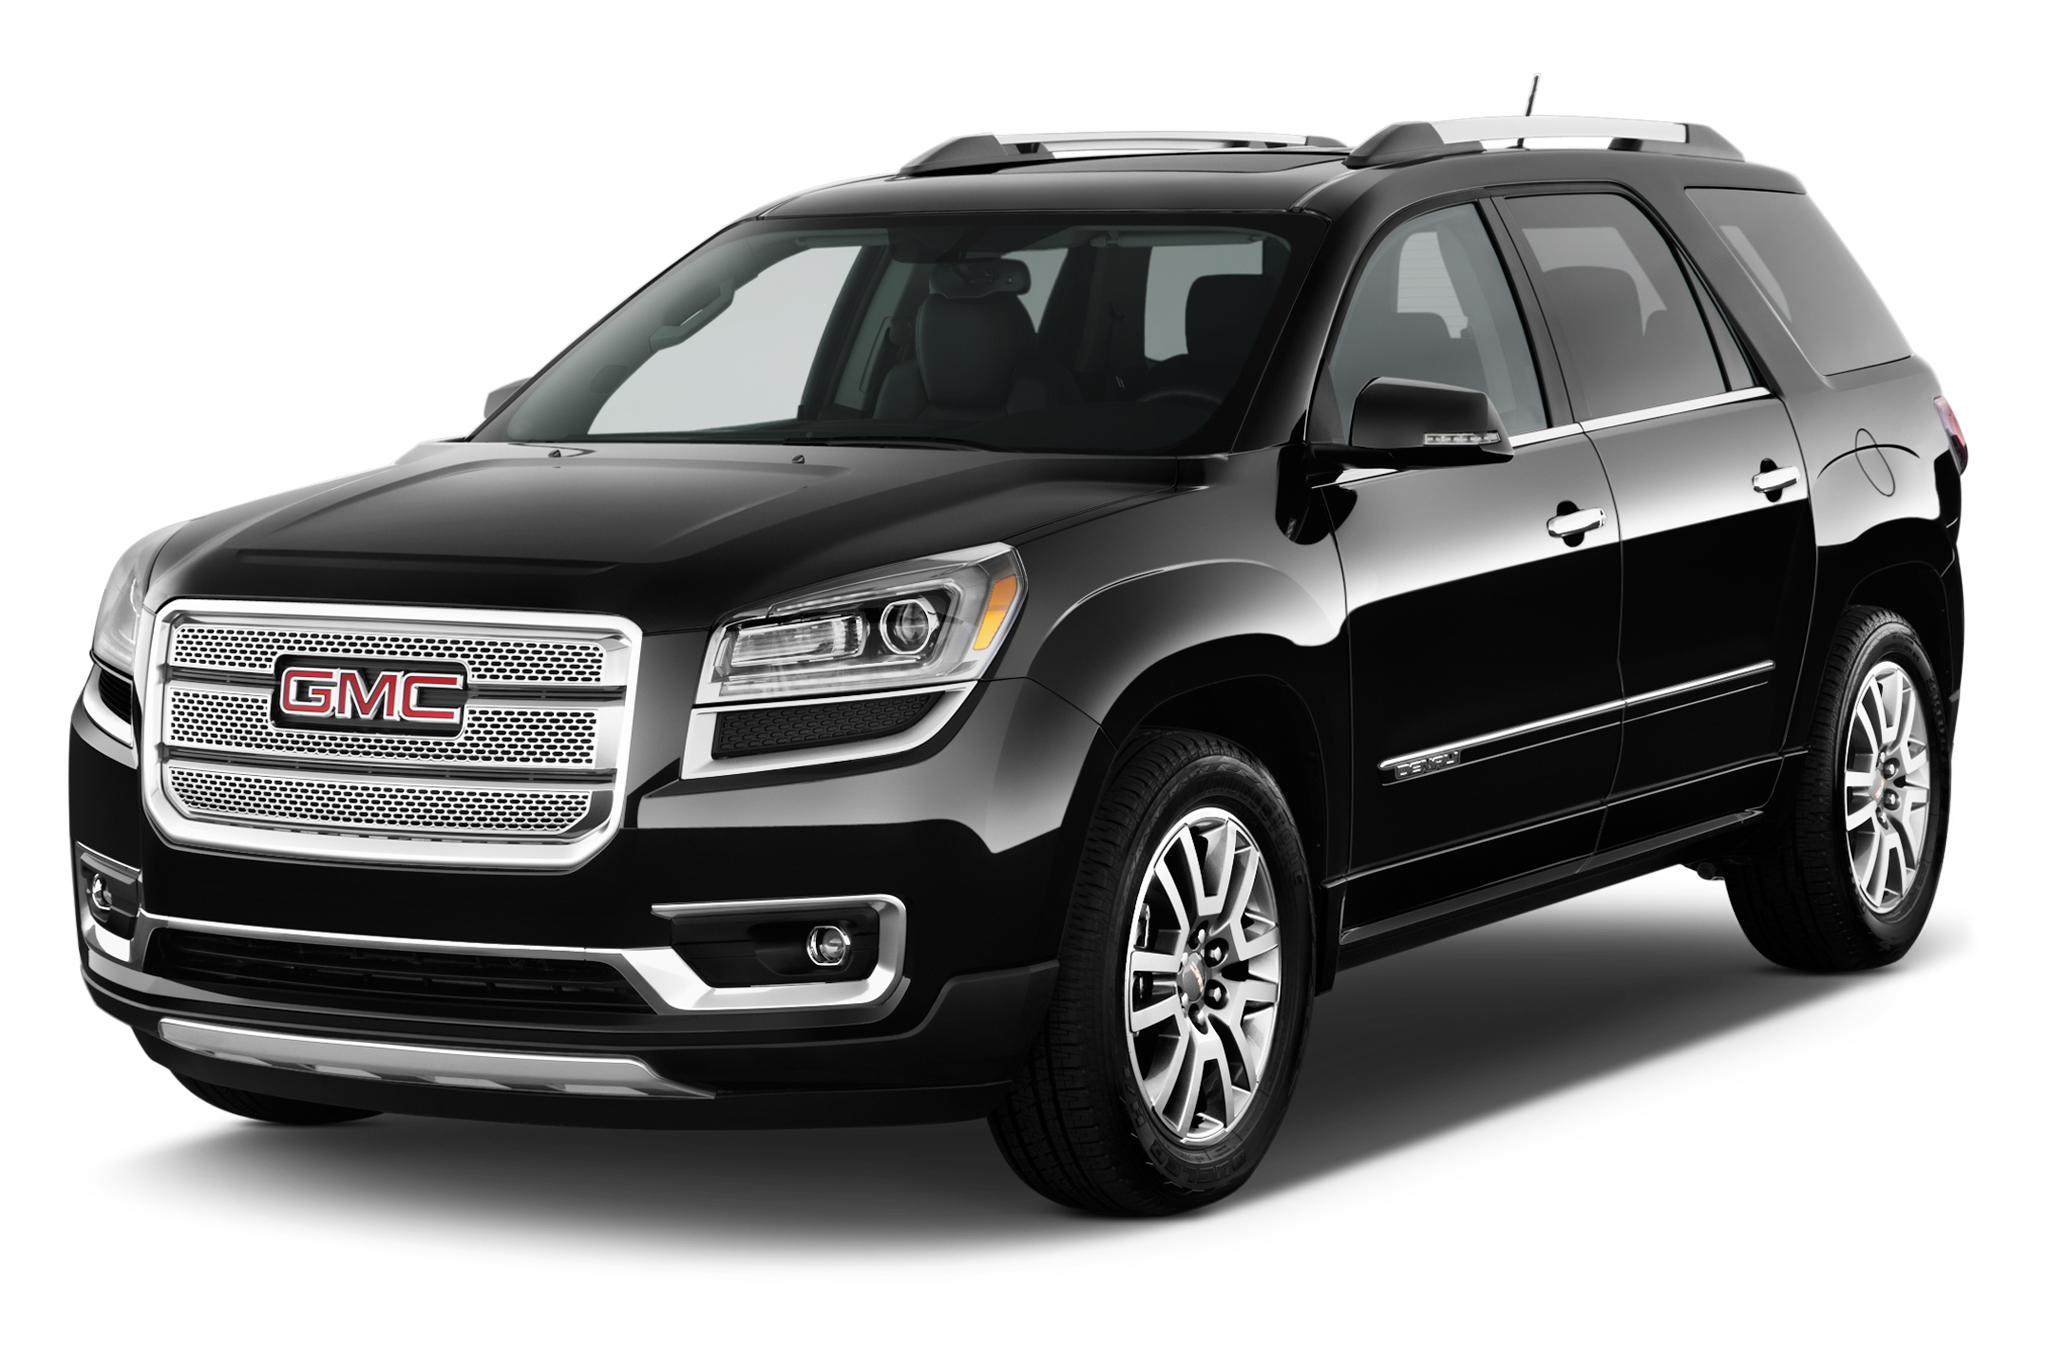 images galleries gmc vehicles denali states media pages content en acadia historicdenali yukon detail photos us other pressroom united